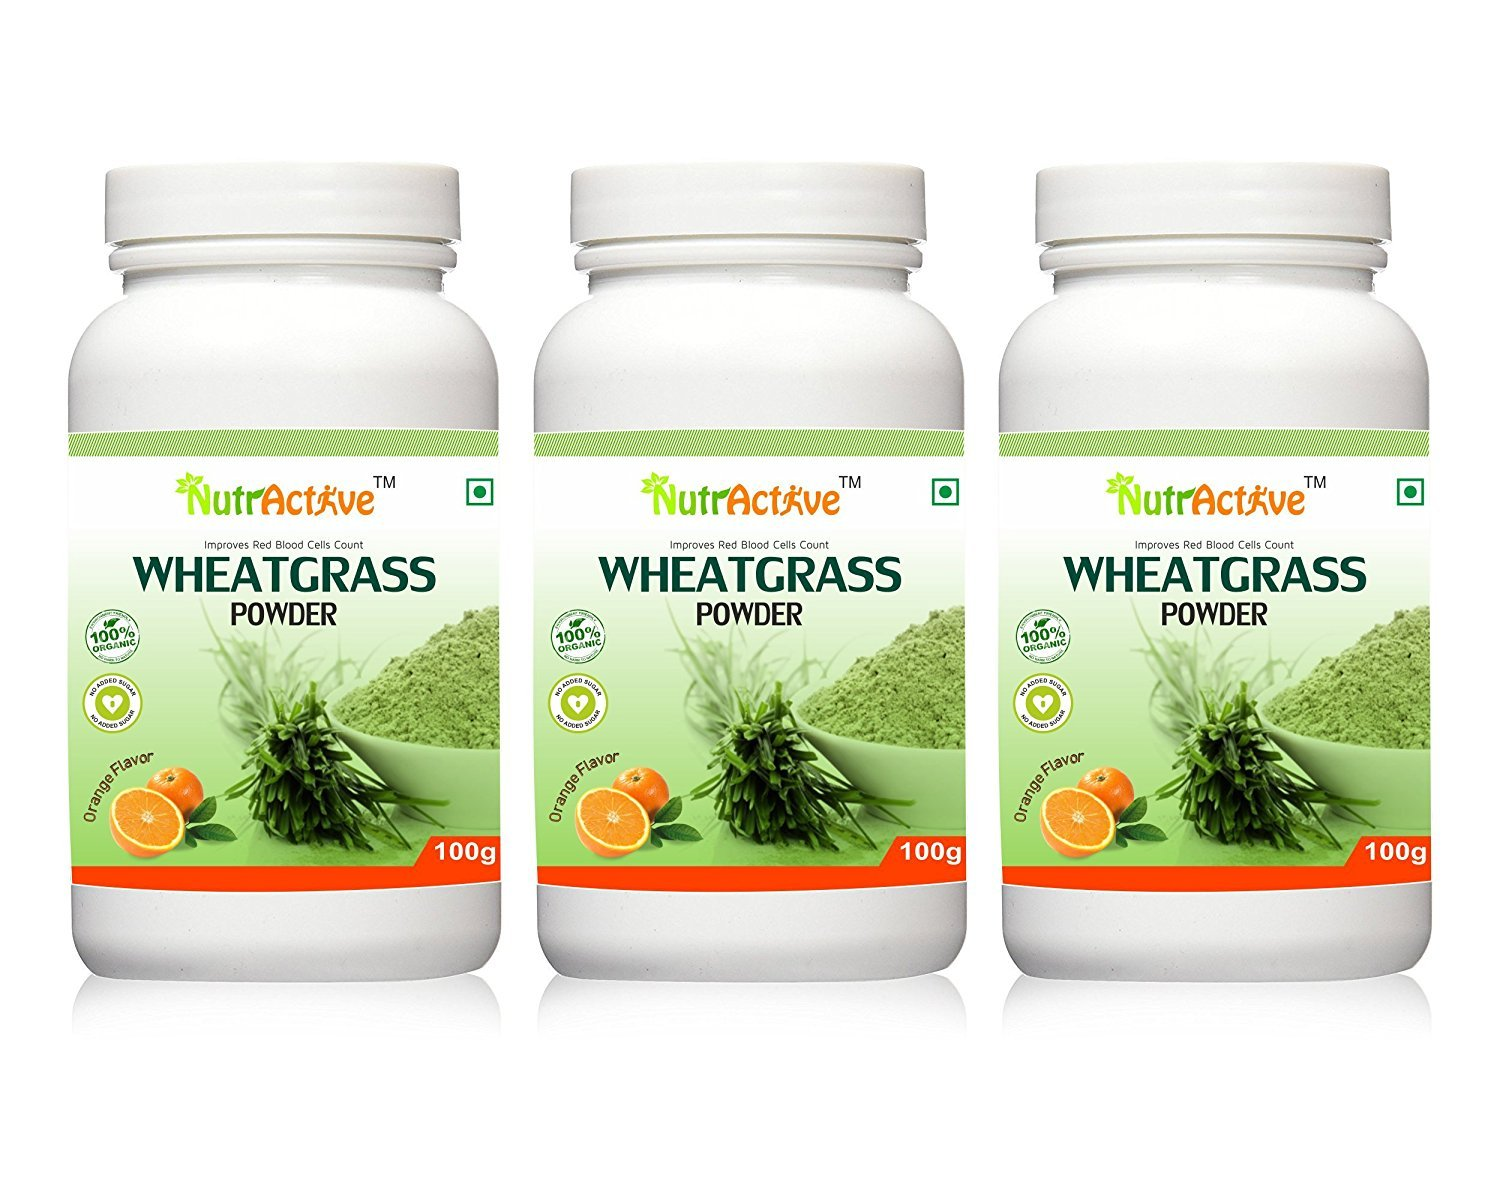 NutrActive Organic Wheatgrass Powder with Orange Flavor - 100 gm (Pack of 3)